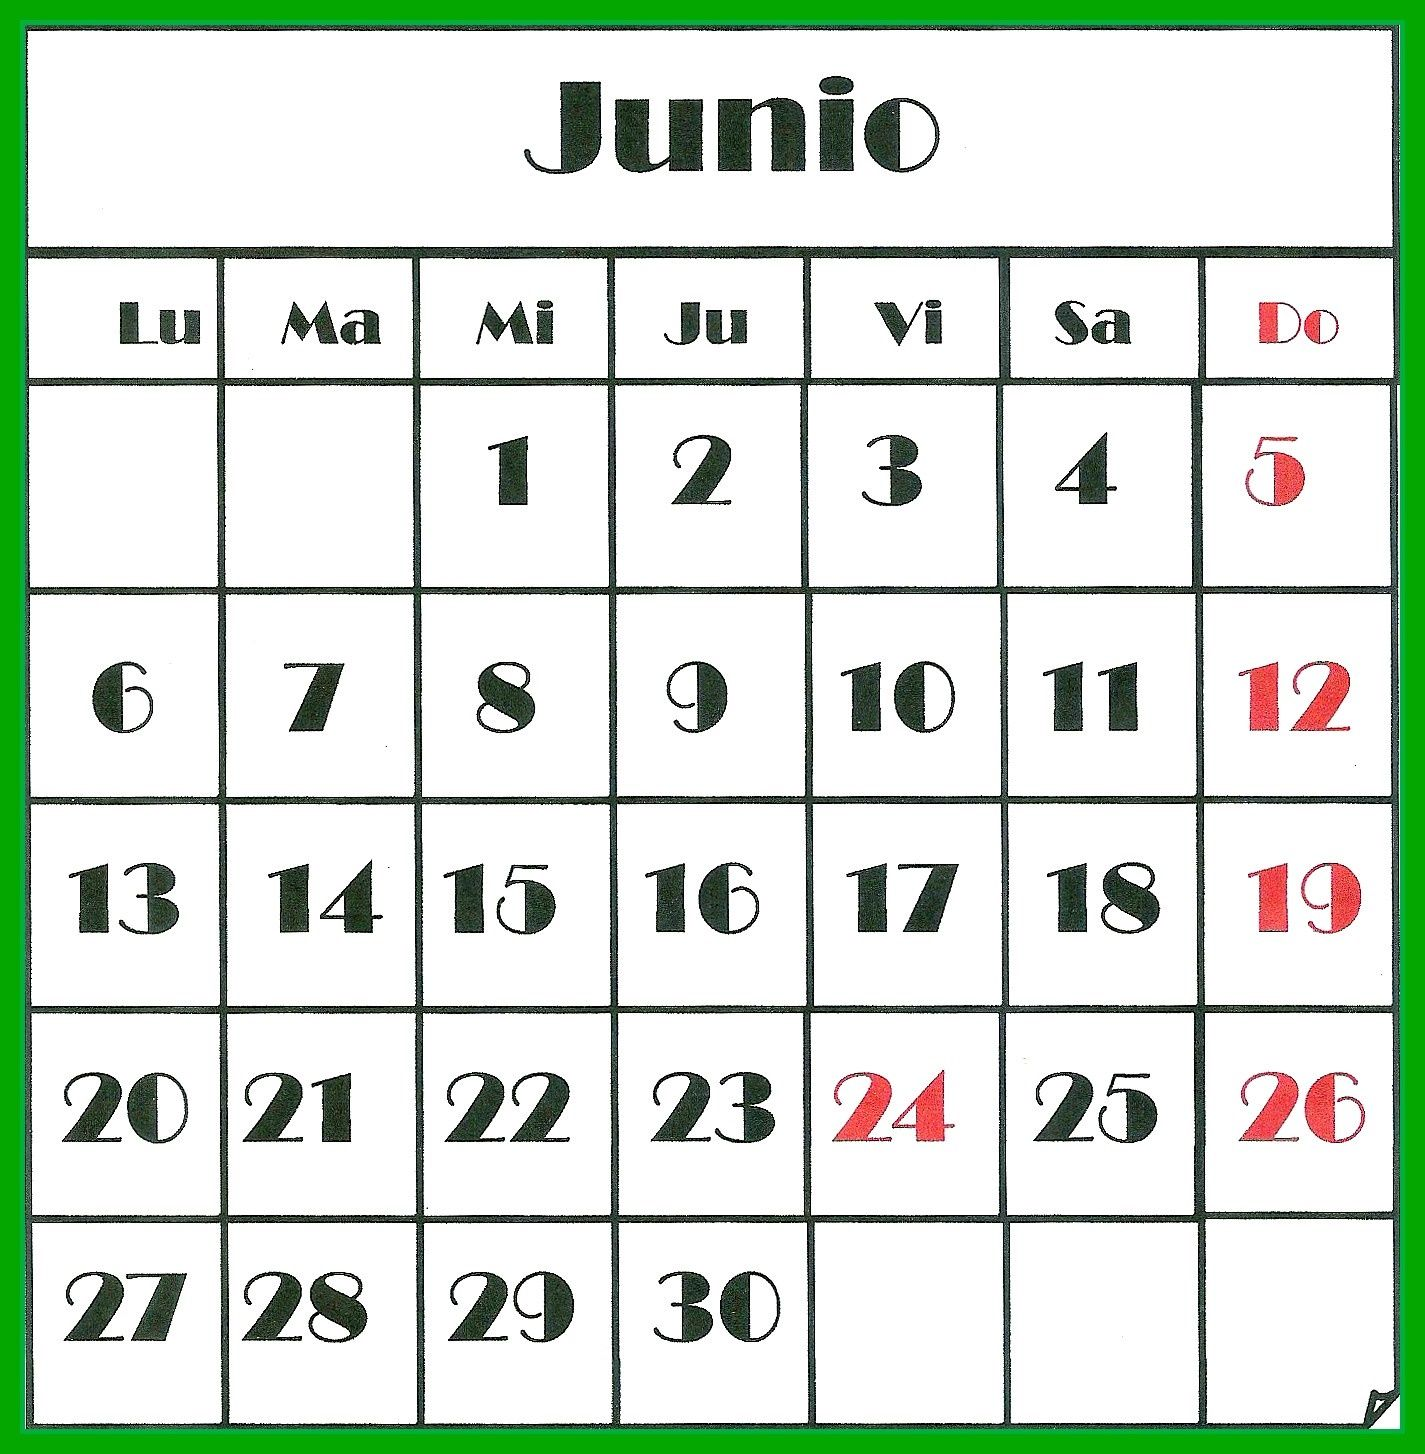 Junio 2016 mi almanaque 2016 games y scrabble for Calendario junio 2016 para imprimir